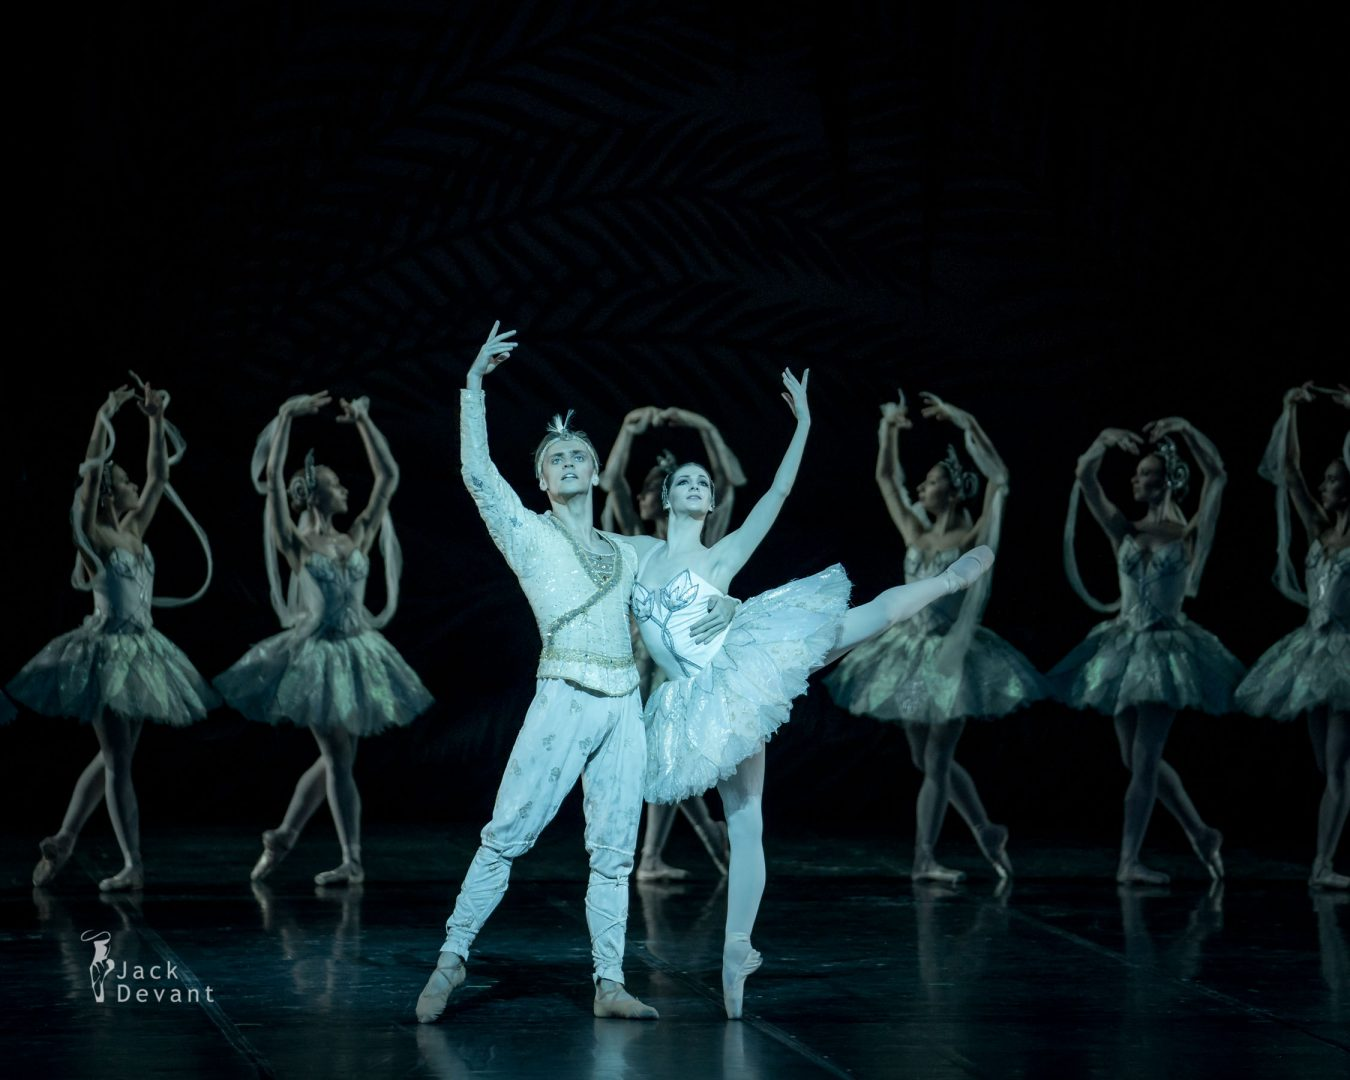 The Kingdom of the Shades Laurretta Summerscales as Nikiya, Sergei Polunin as Solor corps 3